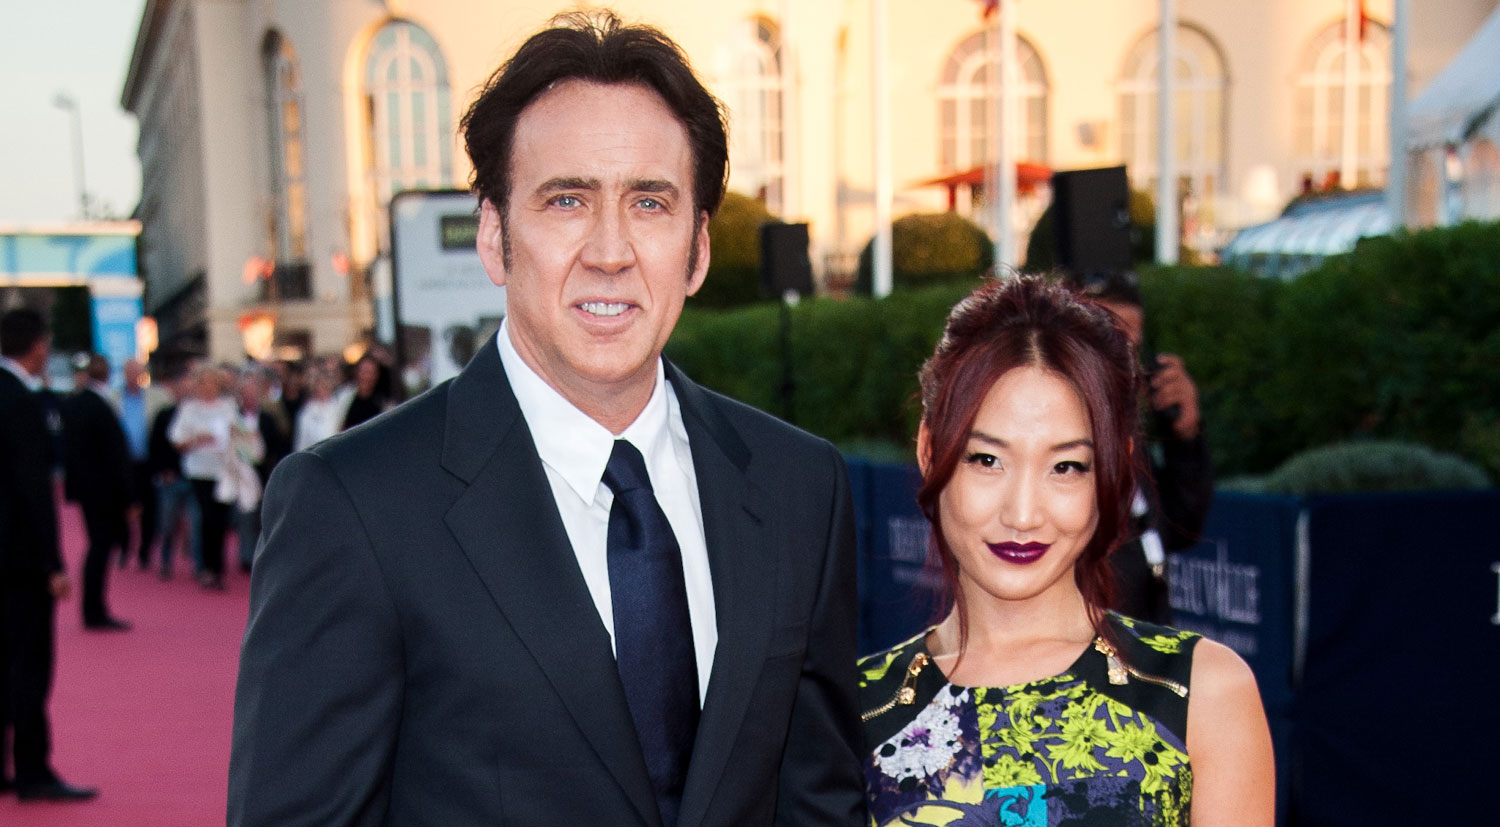 Nicolas Cage & Wife Alice Kim Separate After Over 11 Years of Marriage